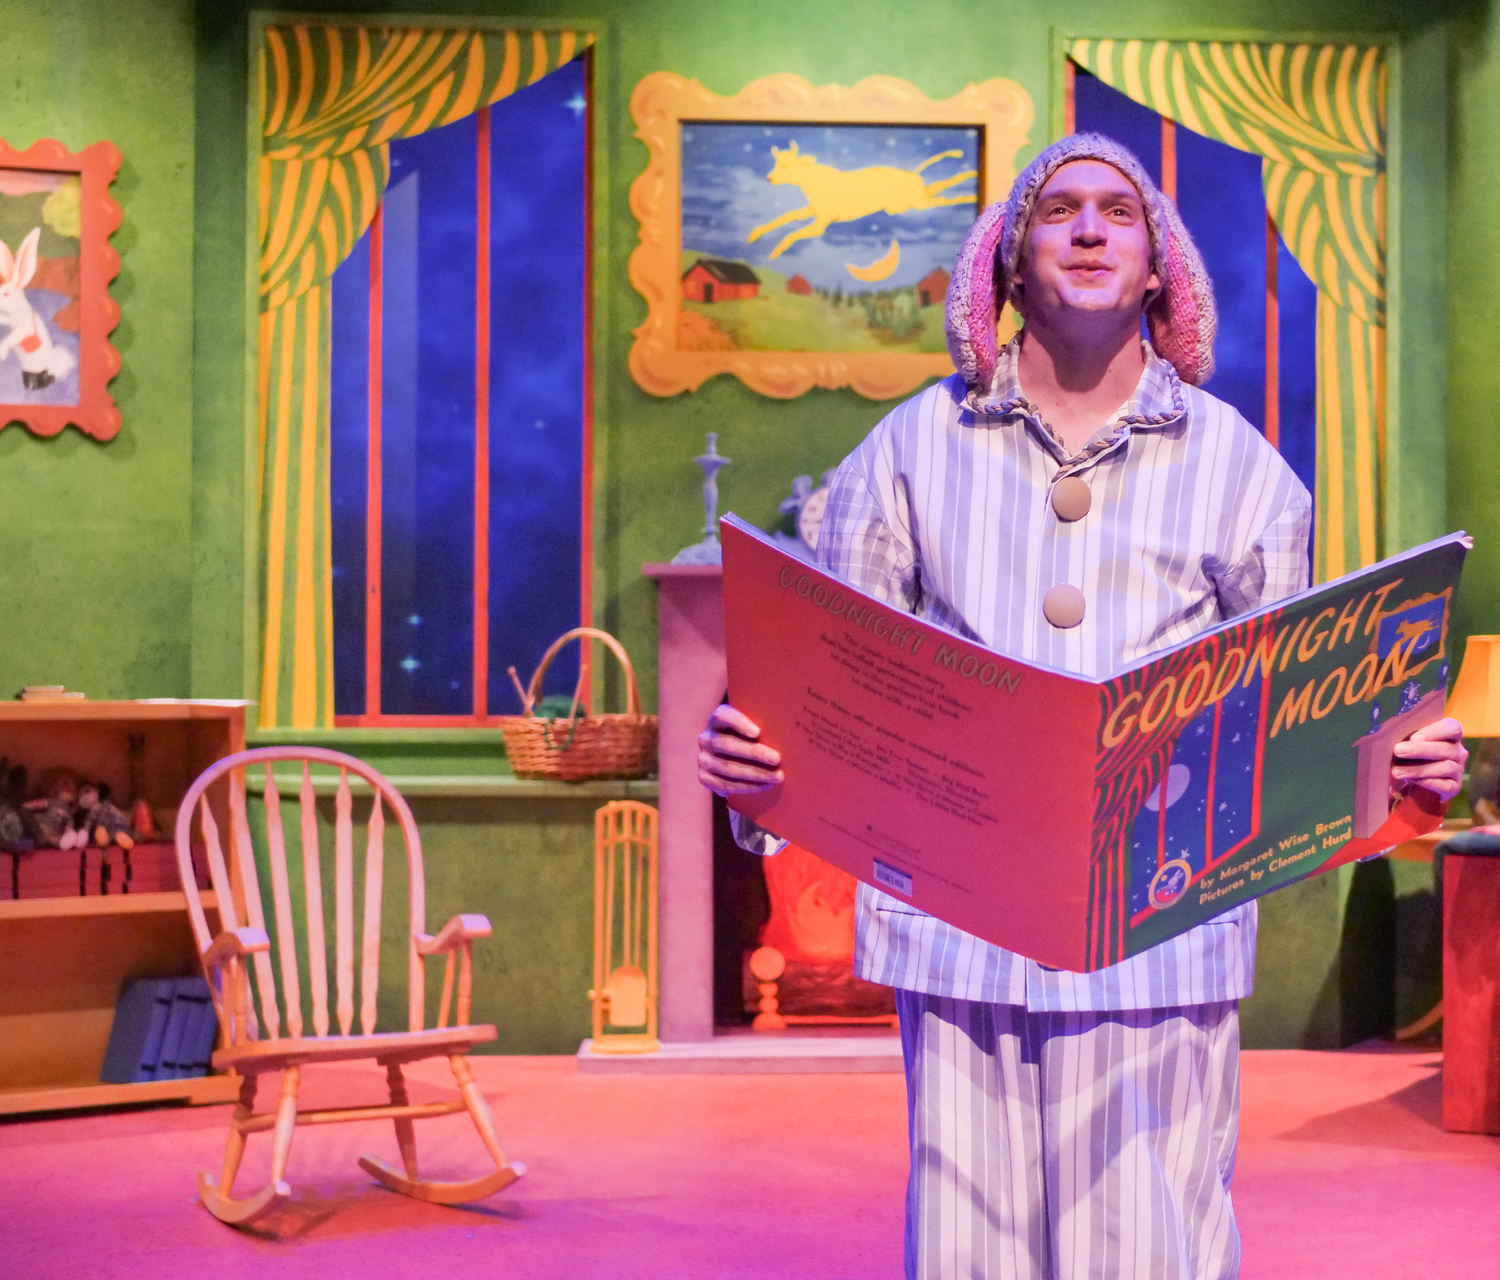 BWW Review: GOODNIGHT MOON is Delightful Entertainment